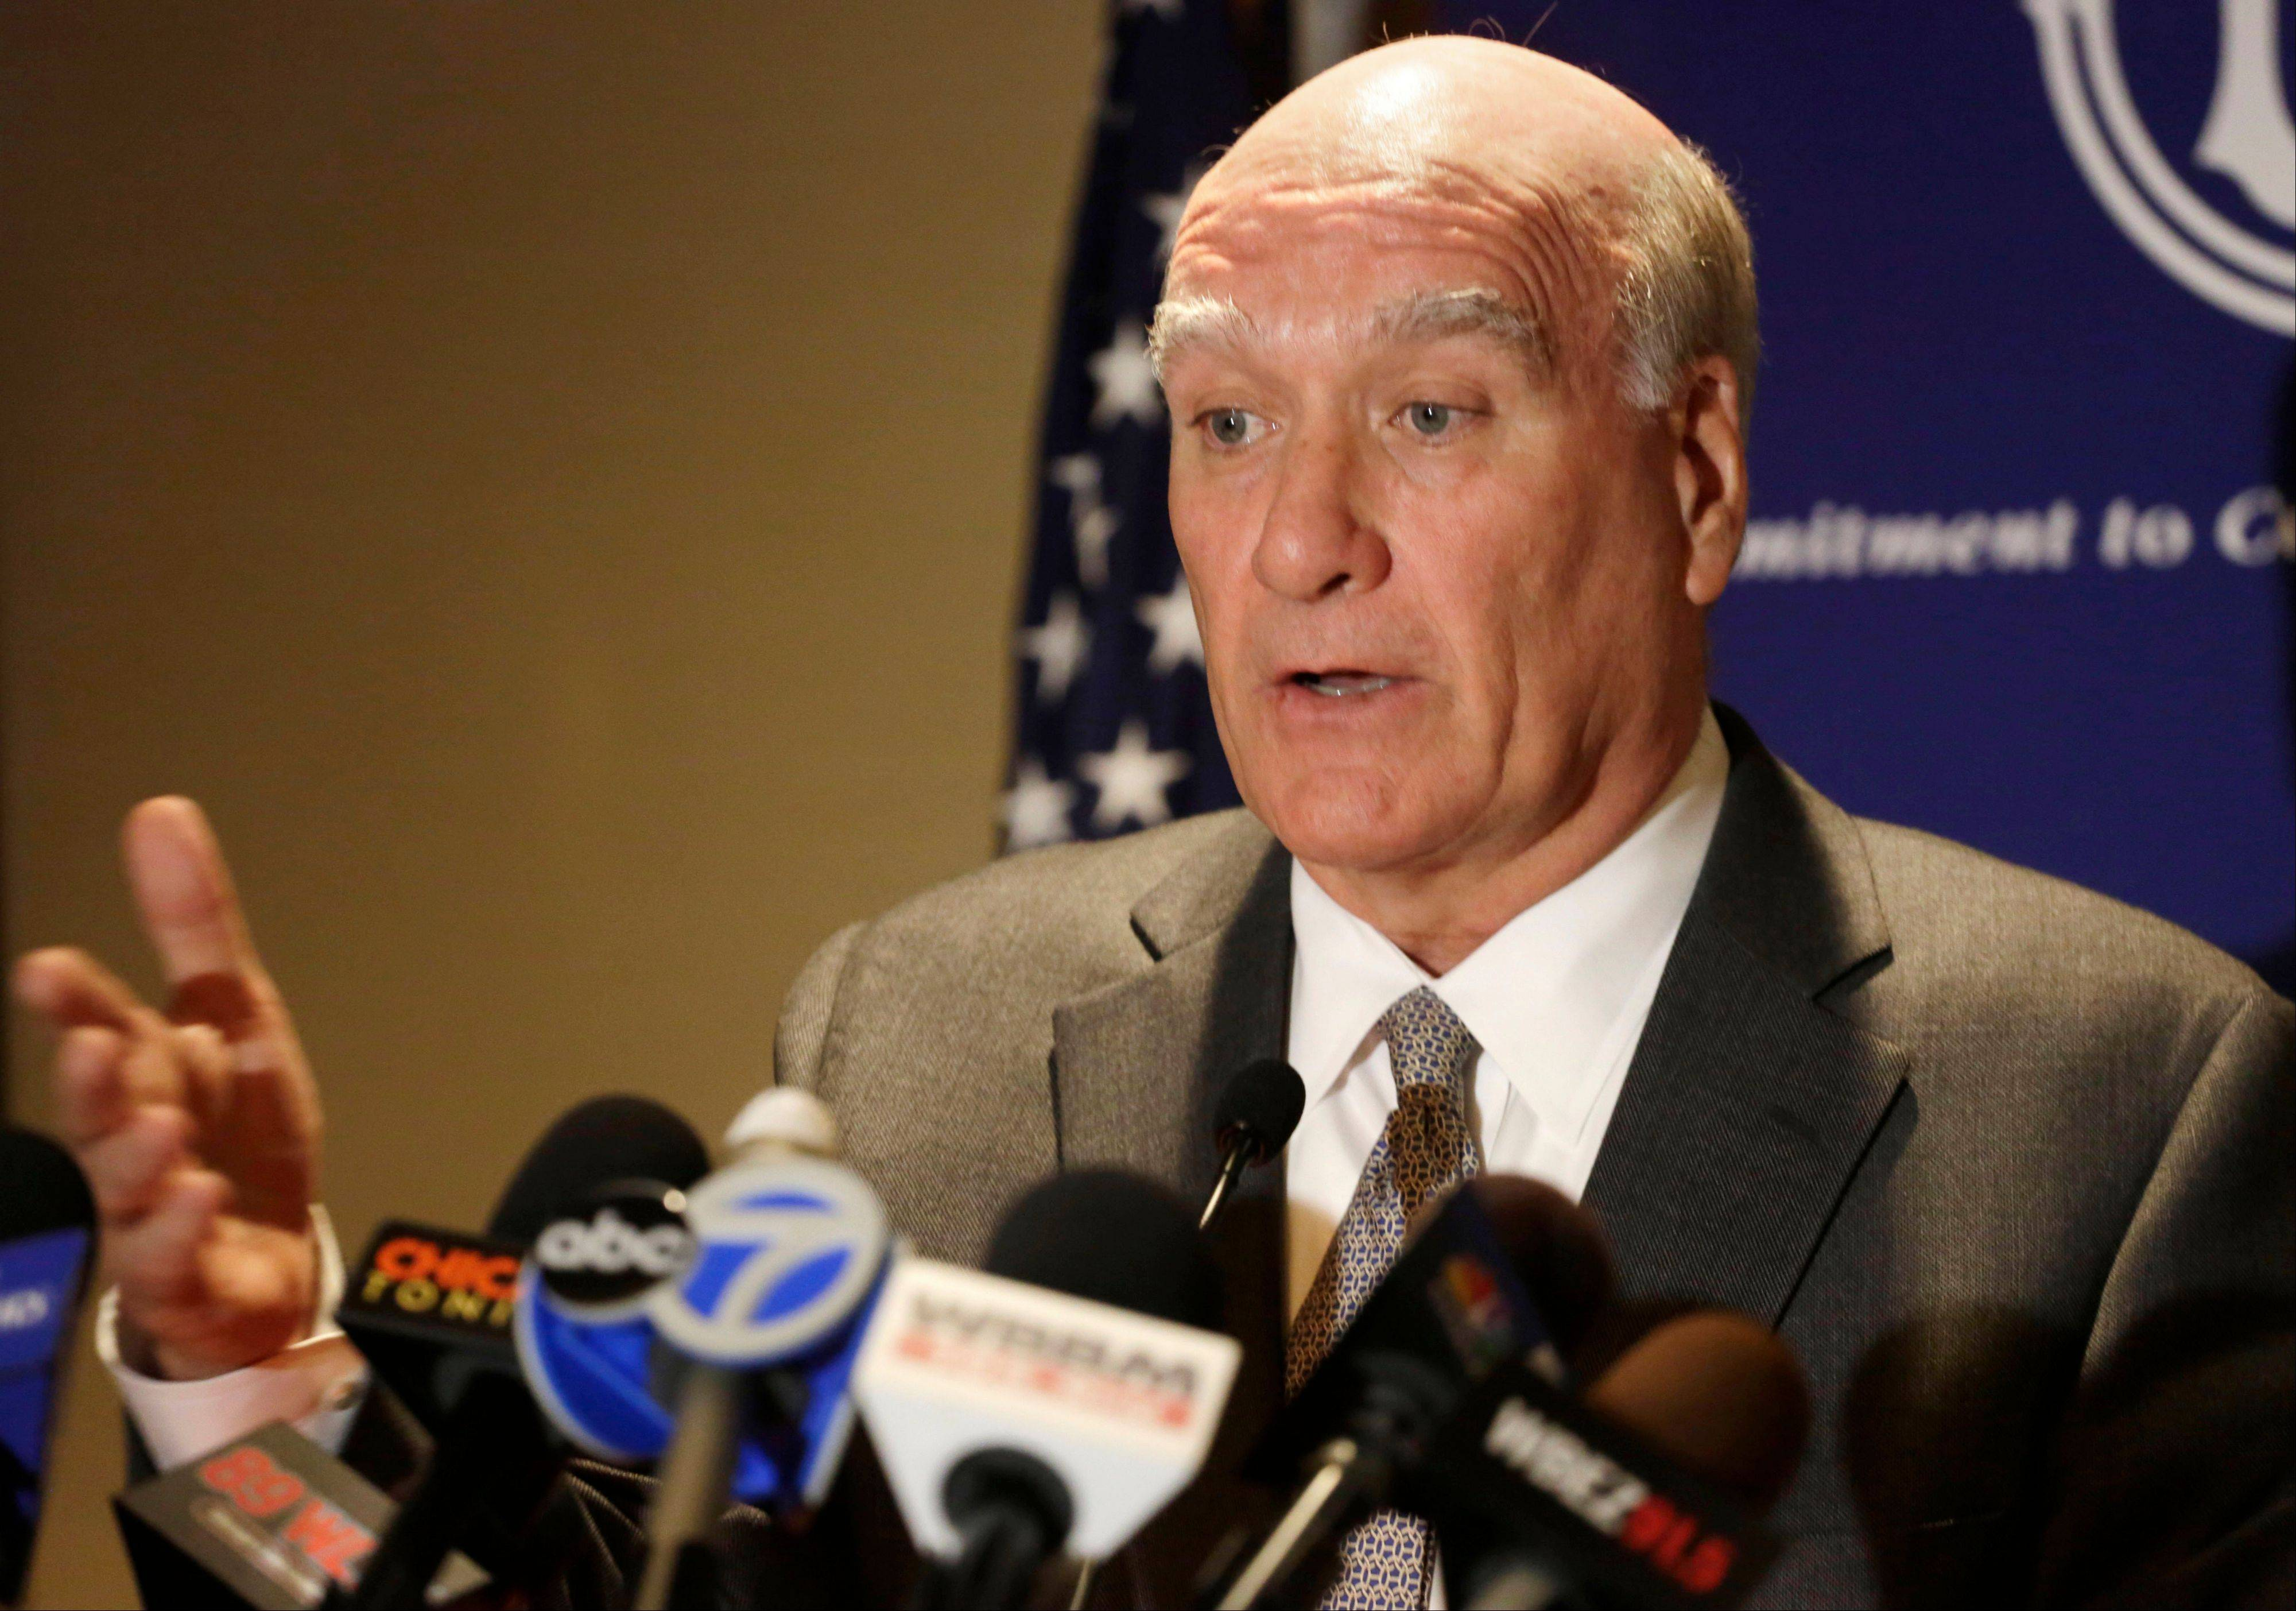 Former White House Chief of Staff Bill Daley is calling on Gov. Pat Quinn to hold around-the-clock talks to resolve the state's $97 billion pension shortfall. Daley will hold a news conference in Chicago on Monday to urge the governor to get more aggressive in trying to solve the worst-in-the-nation crisis.